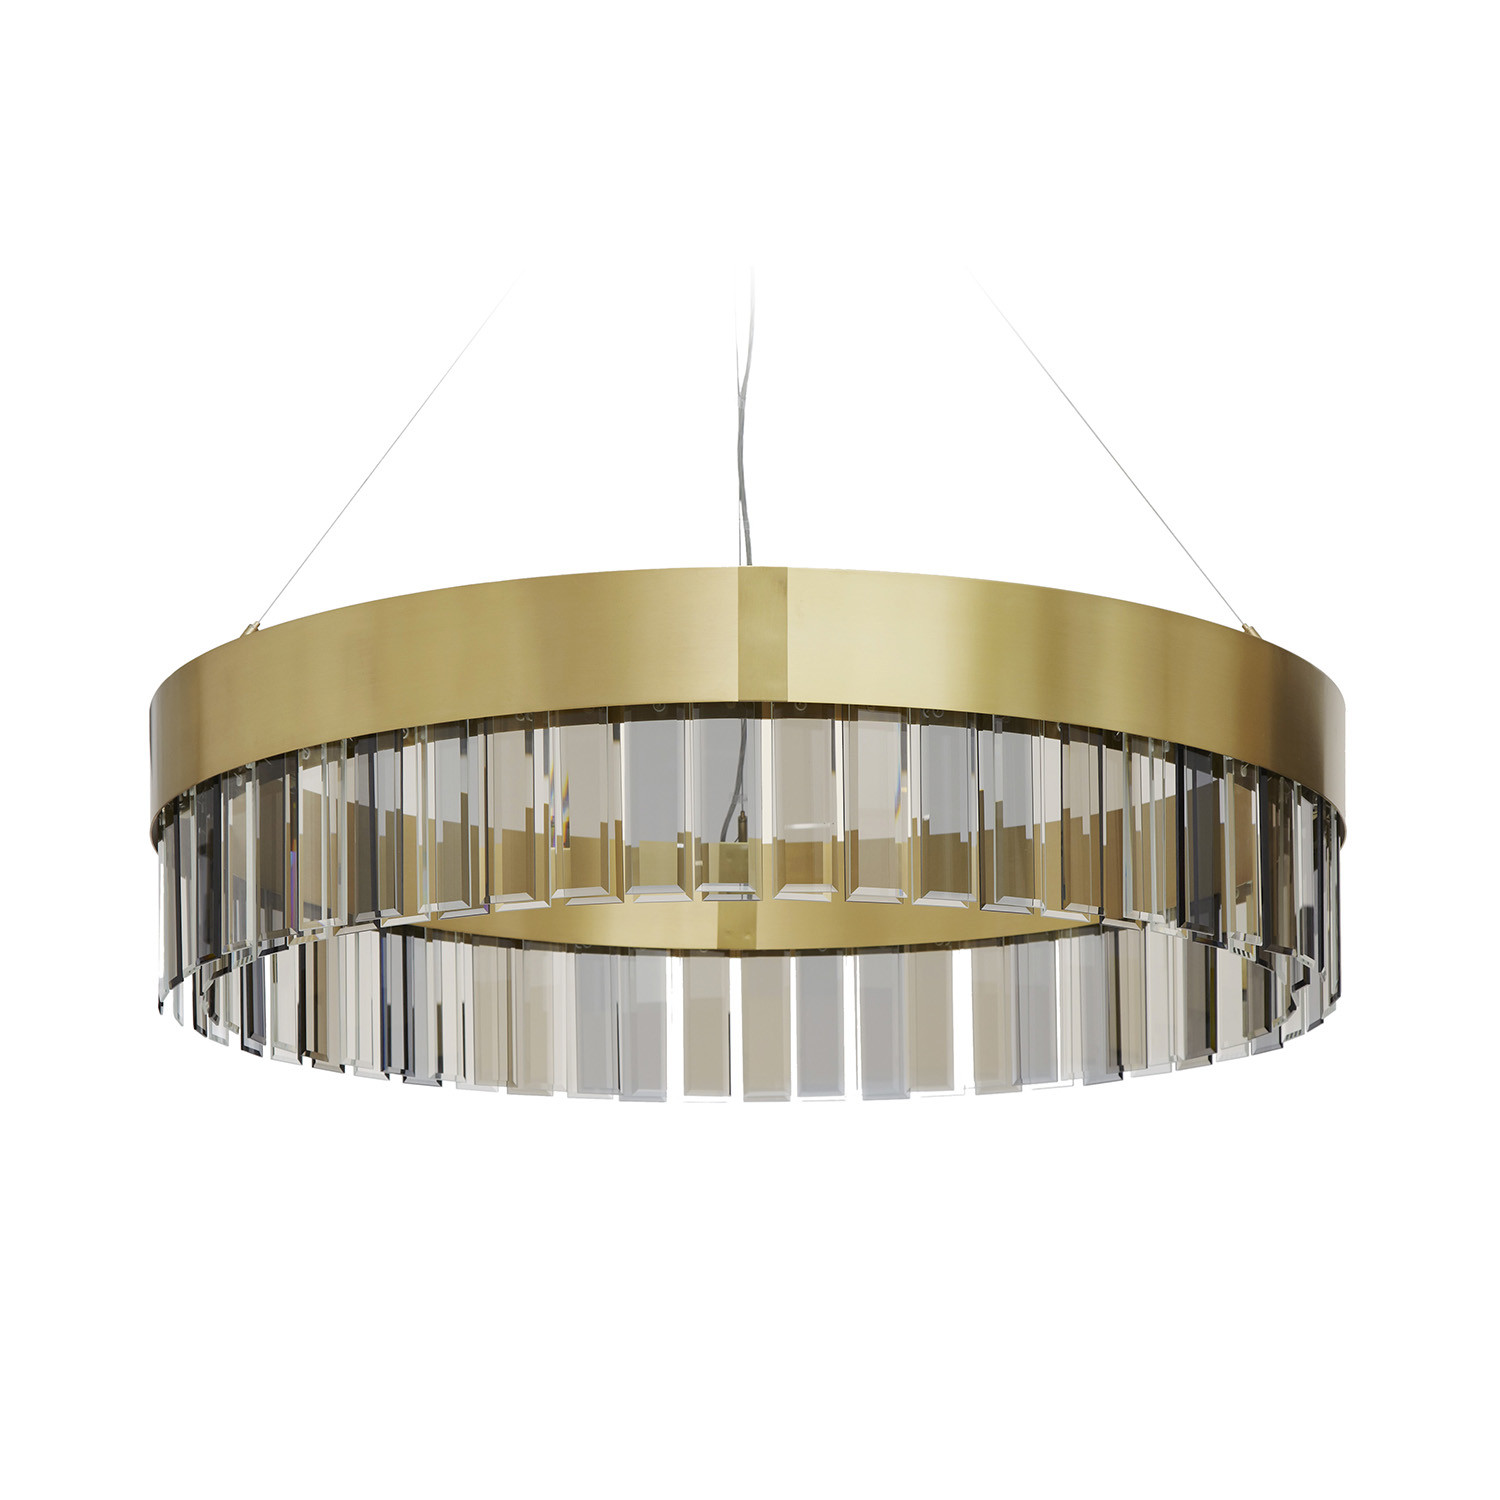 and currey beautiful lotus light island chandelier chandeliers rectangular oval company grand chandeliersoval lamps solaris